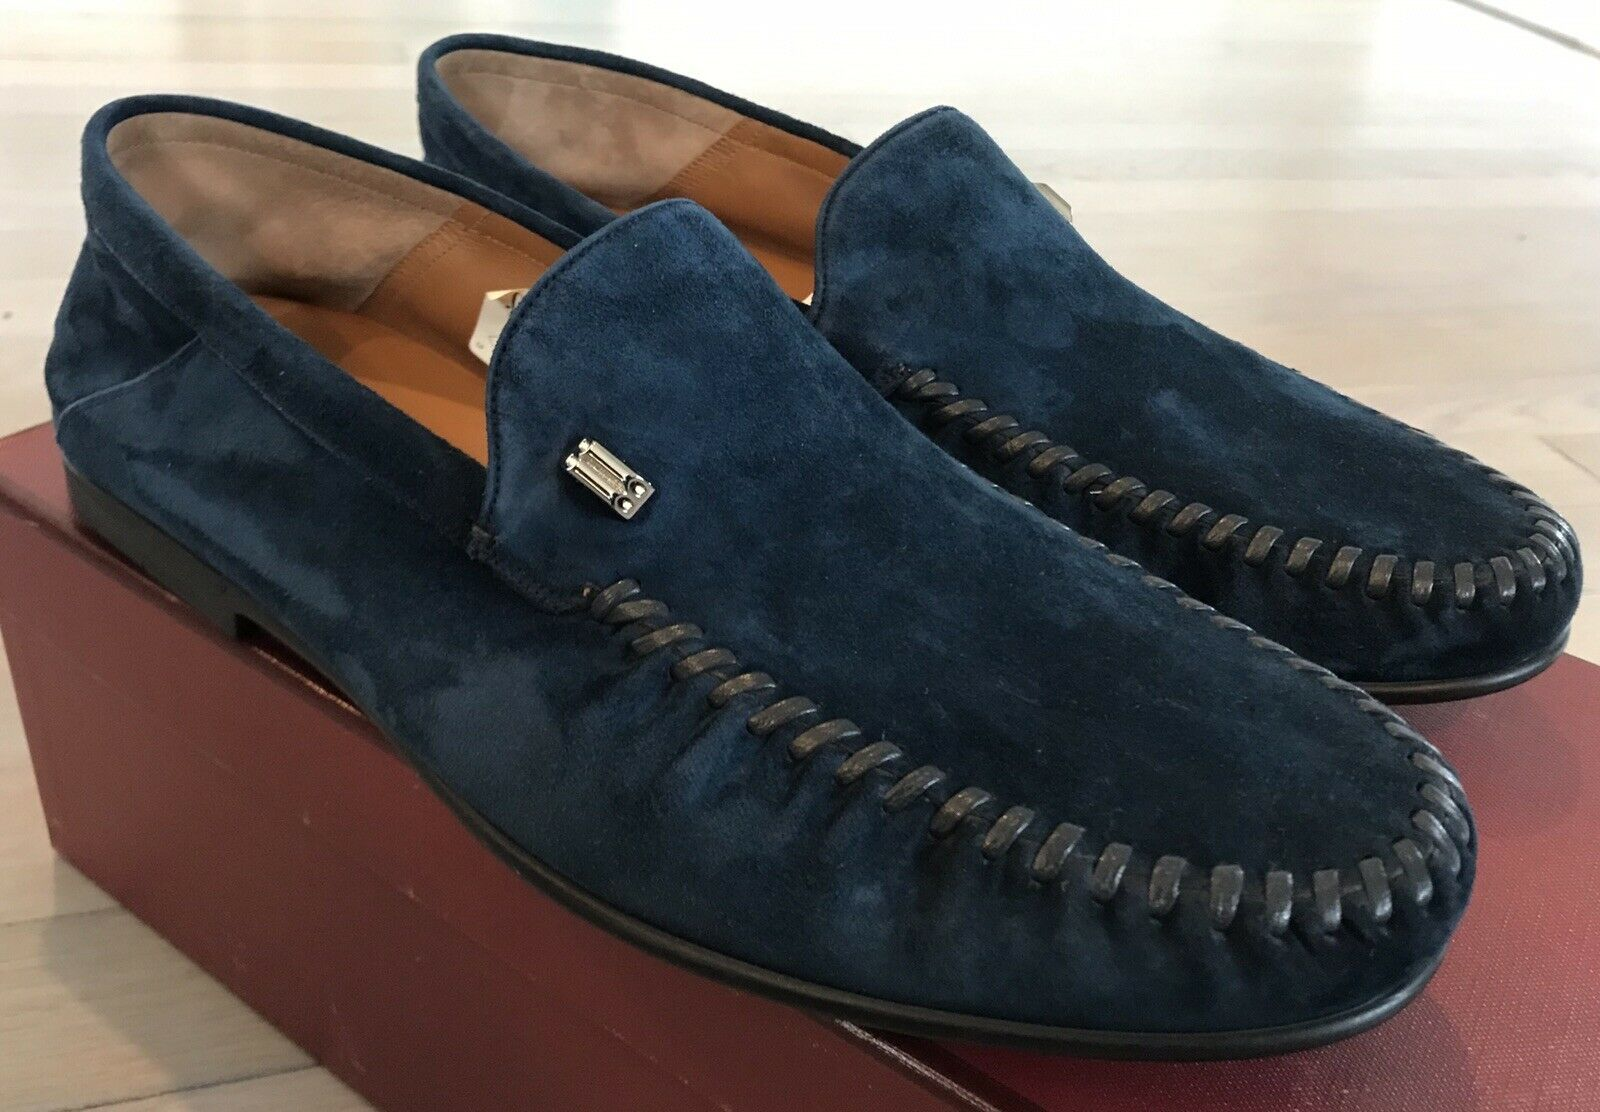 600  Bally Cristian New bluee Suede Loafers Size US 12.5 Made in Switzerland